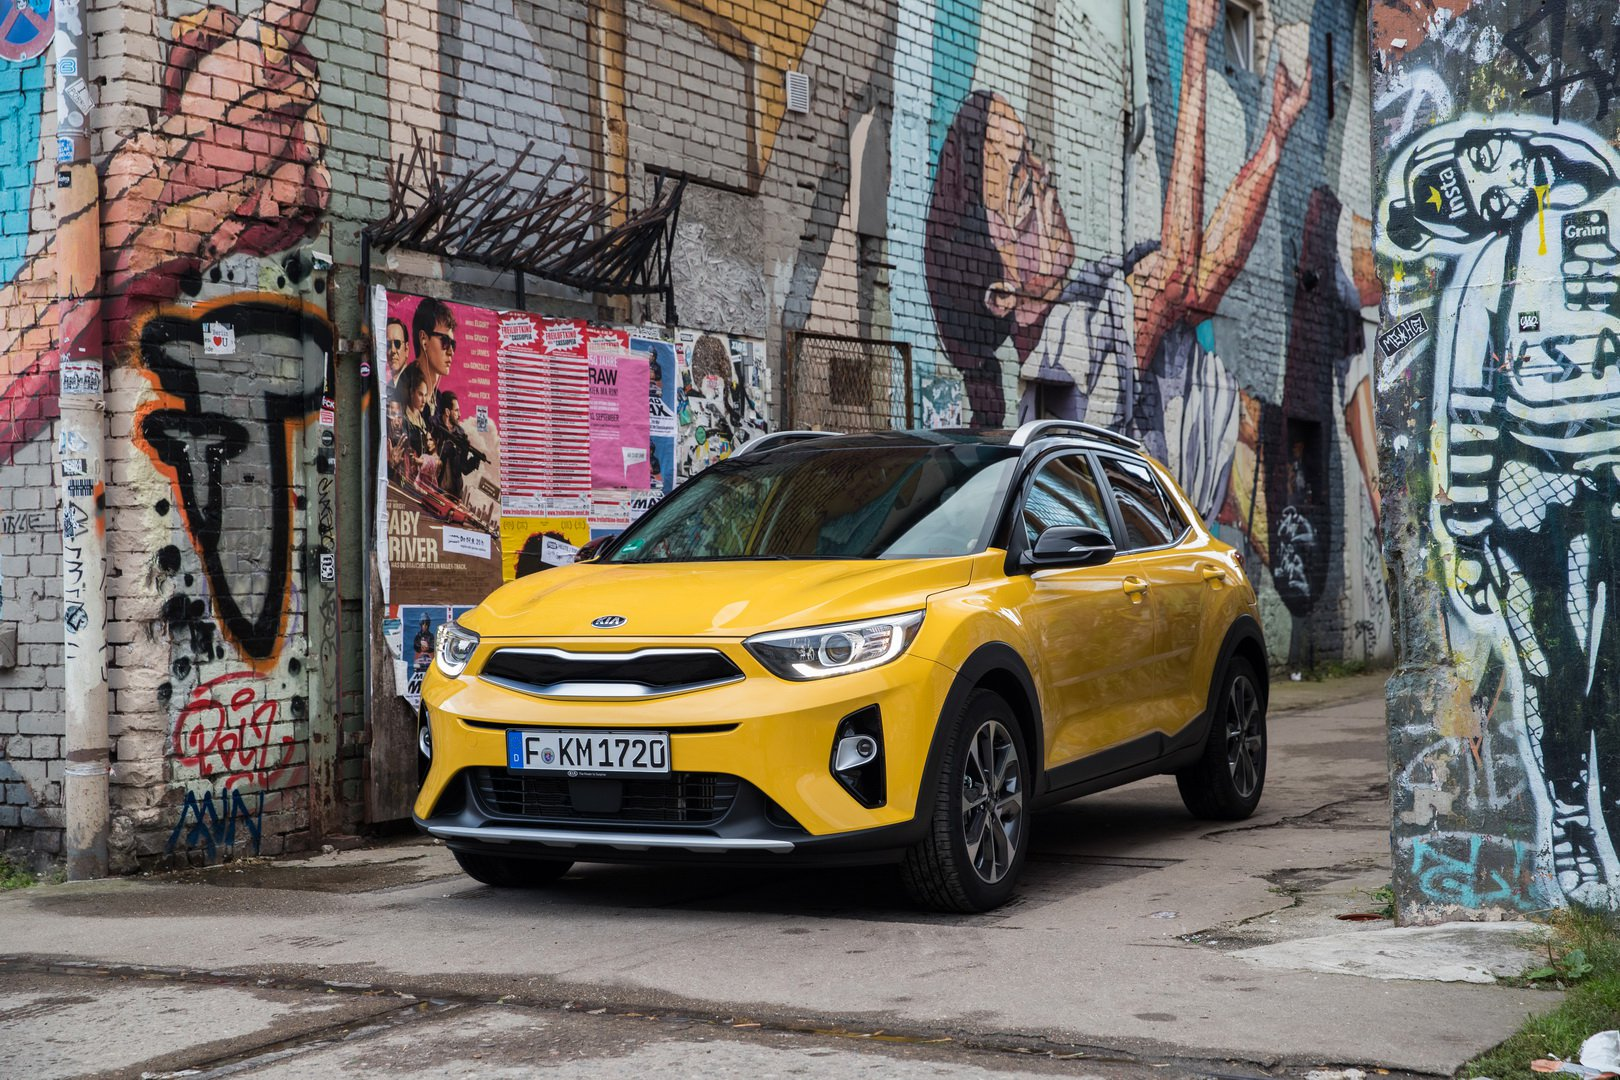 Kia Motors Expands with Crossovers and SUVs